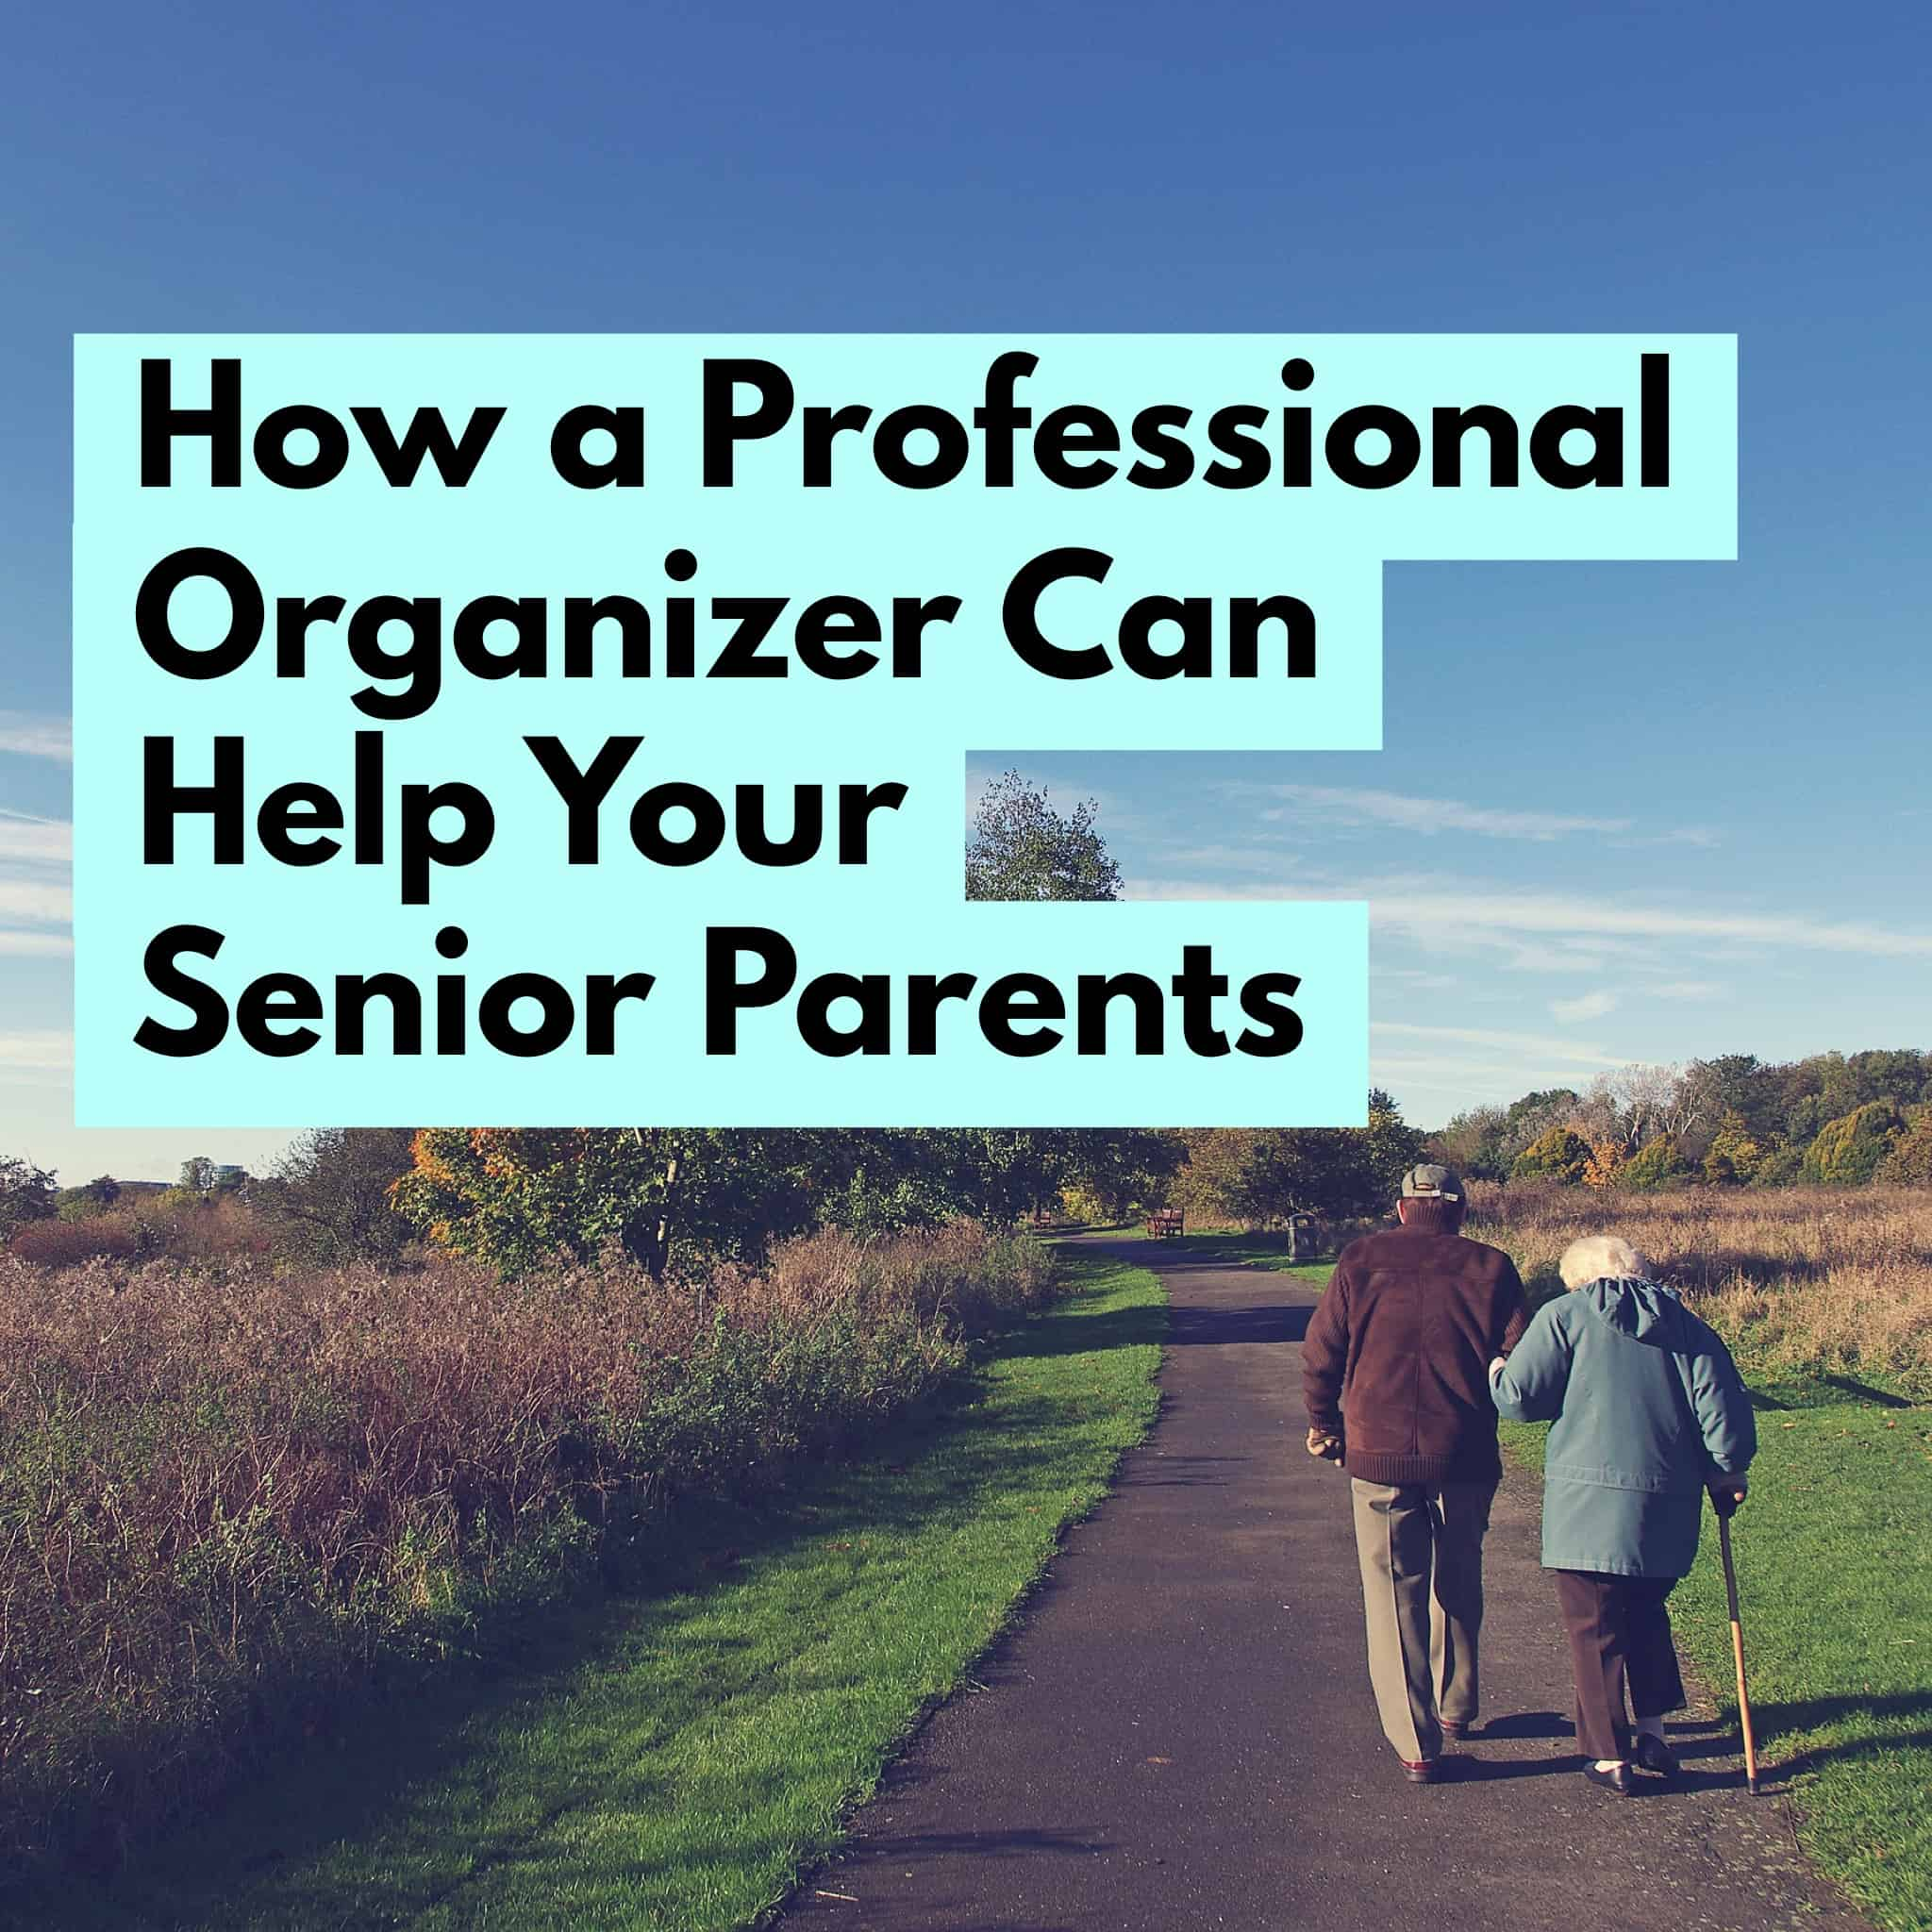 How a Professional Organizer Can Help Your Senior Parents